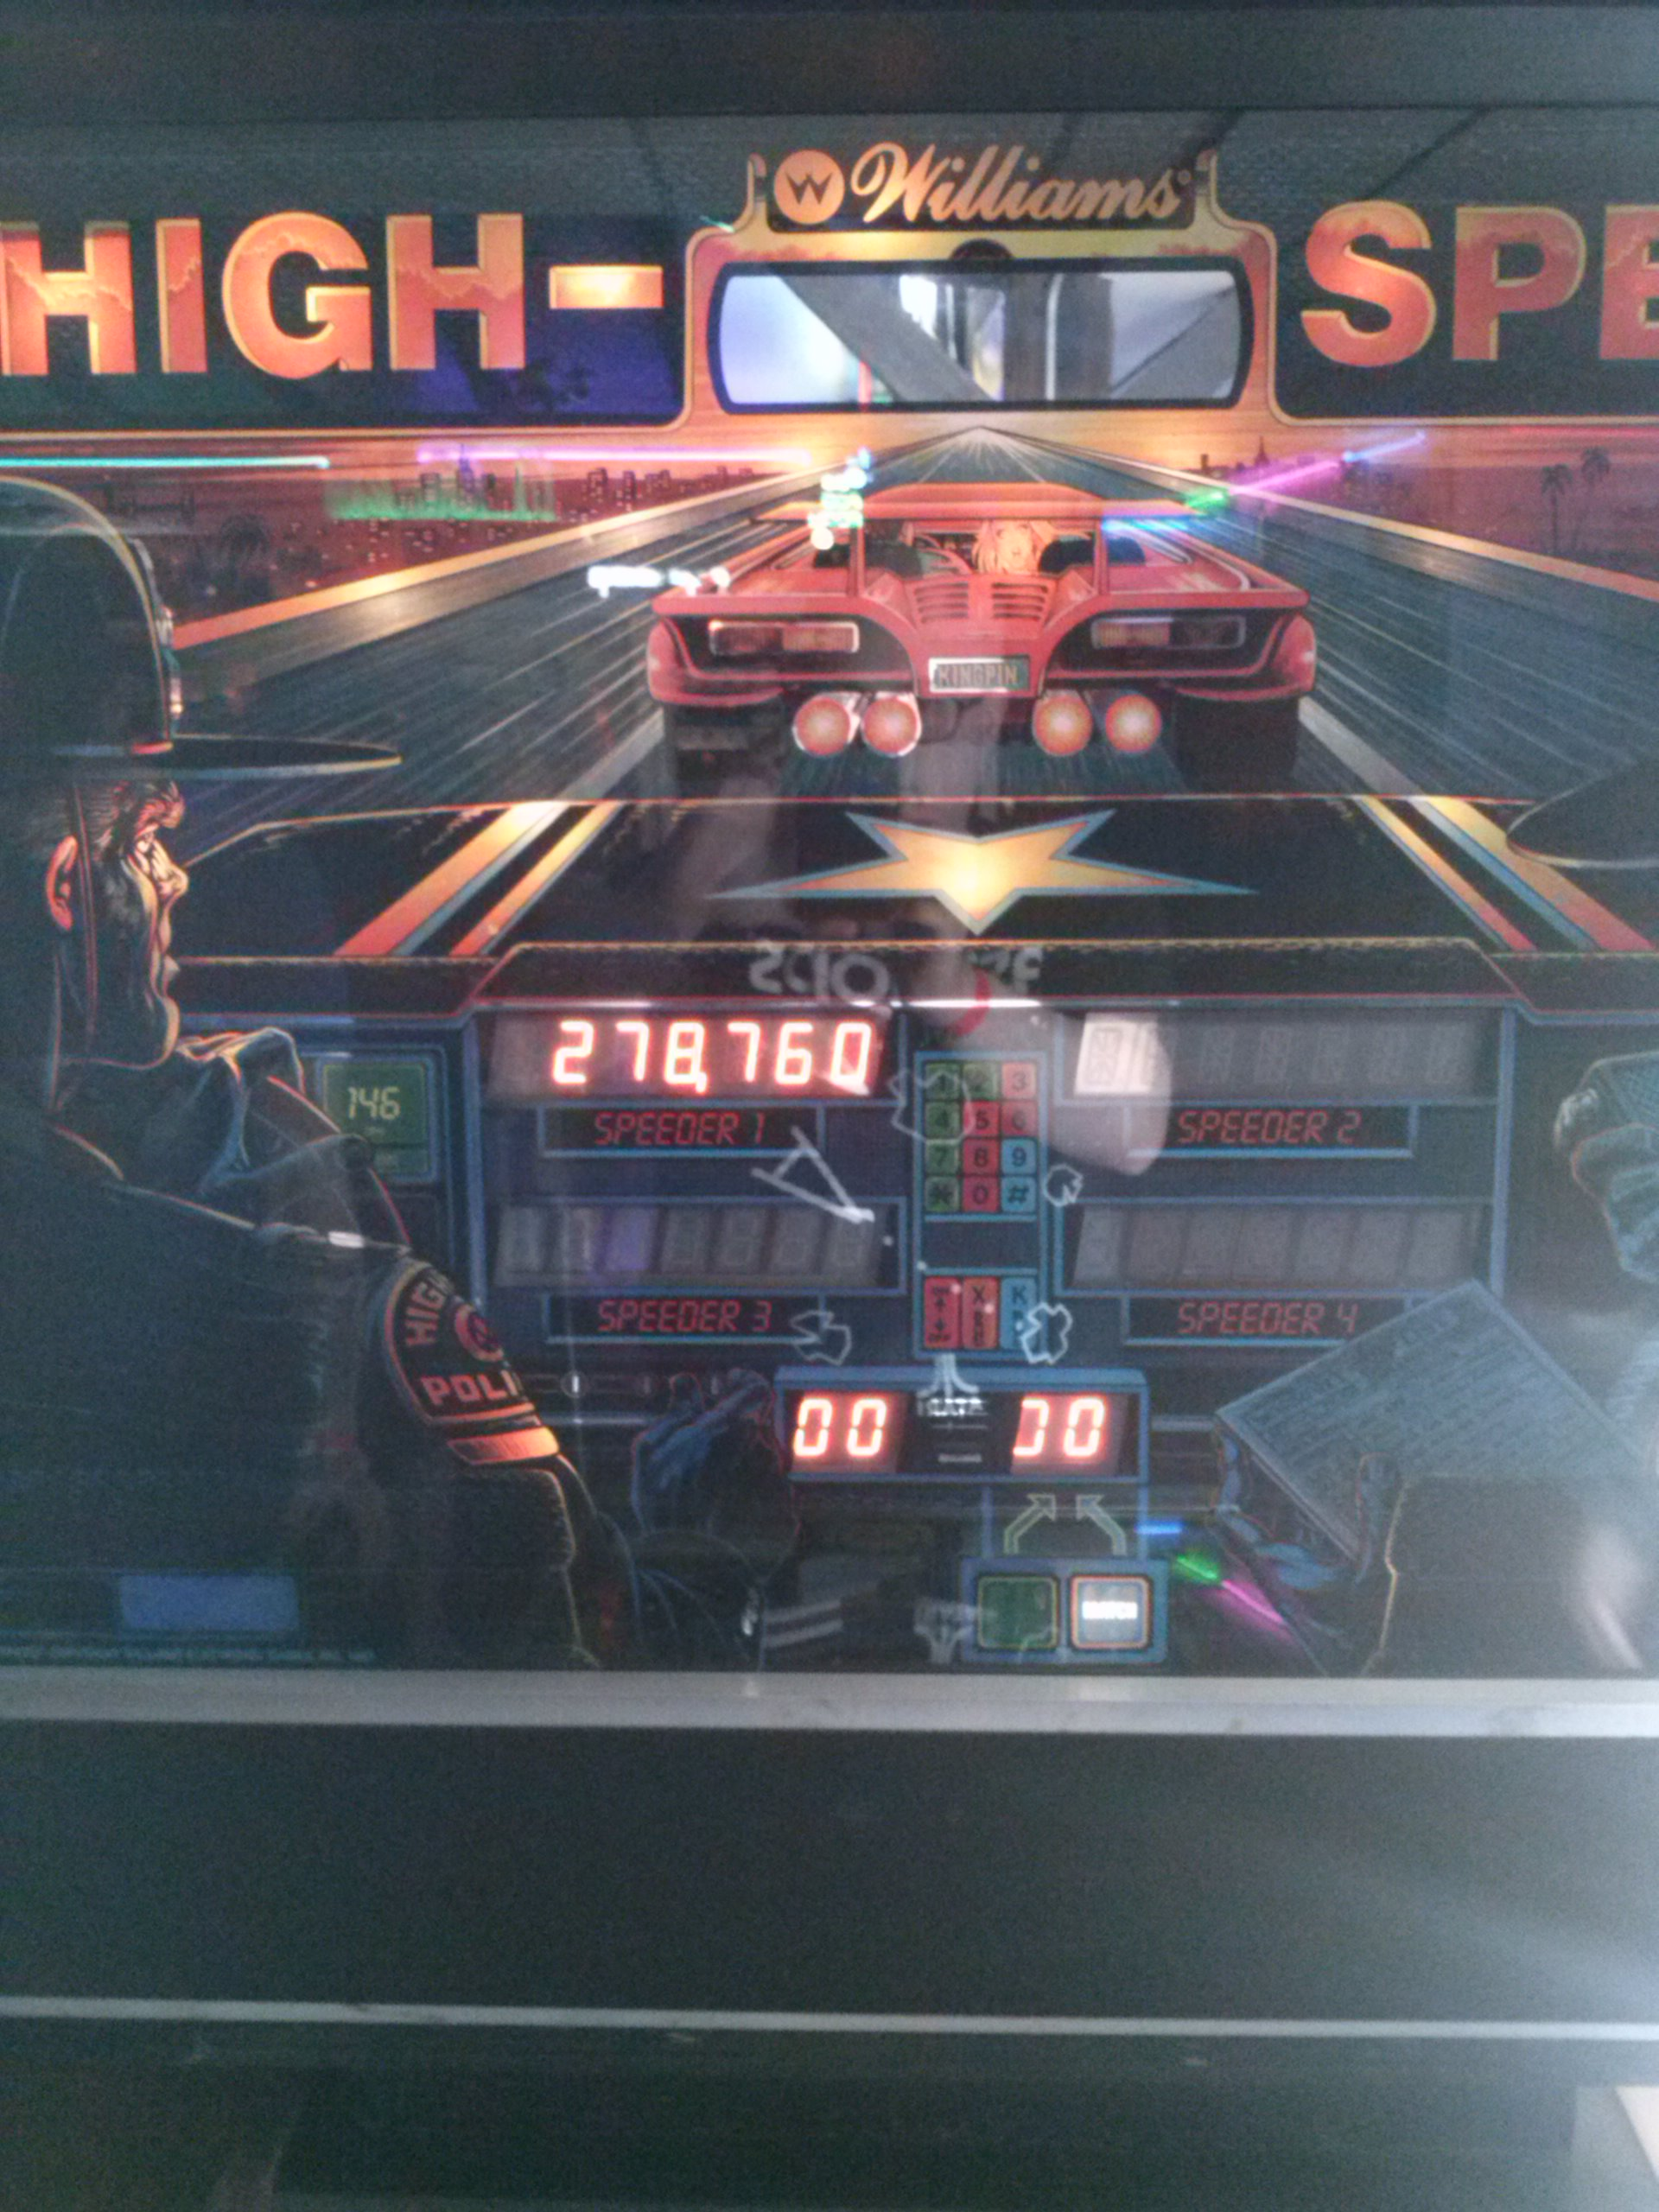 High Speed 278,760 points